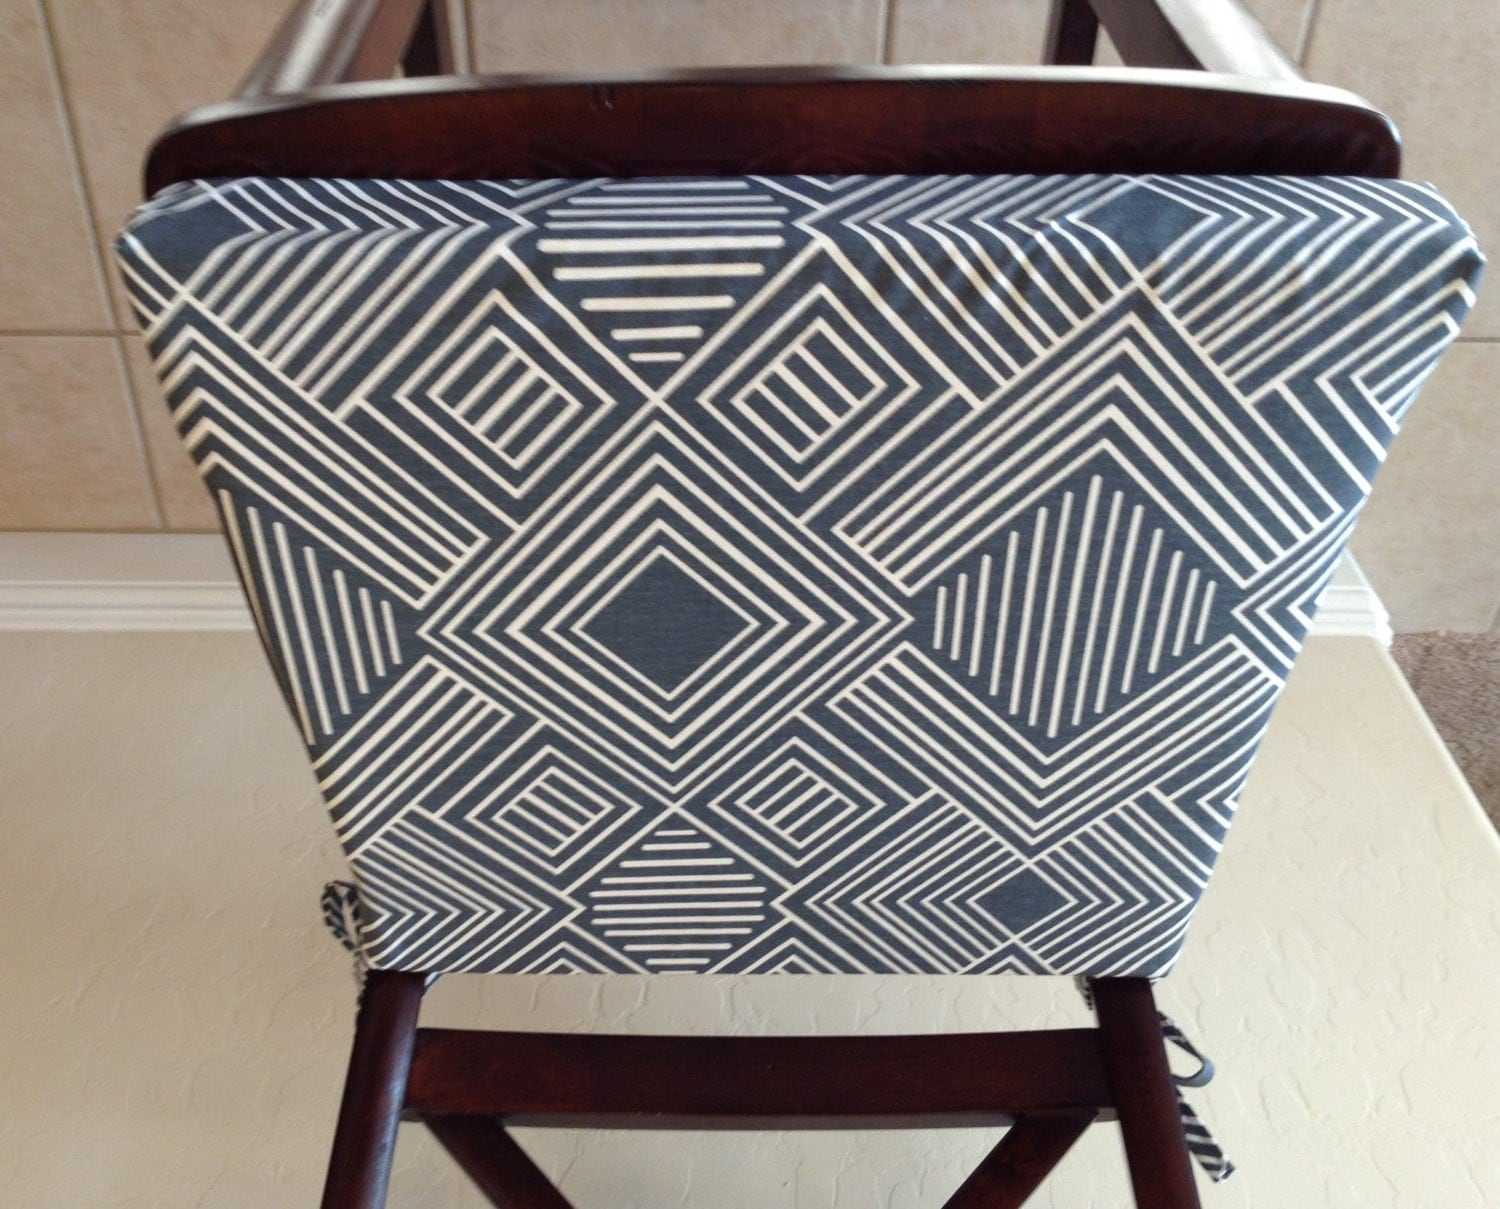 Kitchen Chair Seat Cushion Covers: Geometric Print Seat Cushion Cover Kitchen Chair Pad